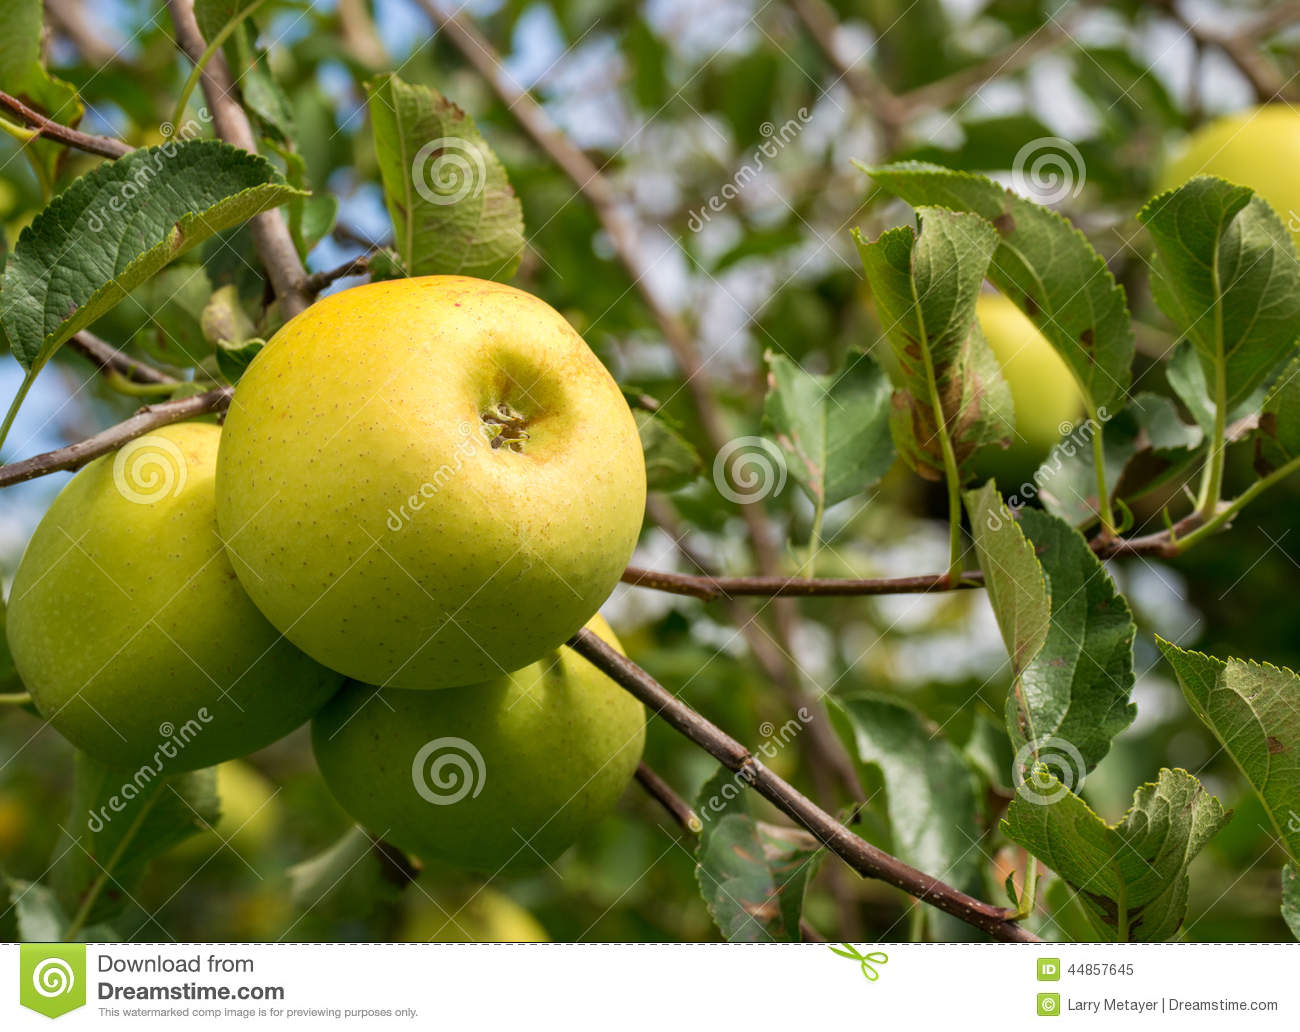 Green Apples growing on an Apple Tree